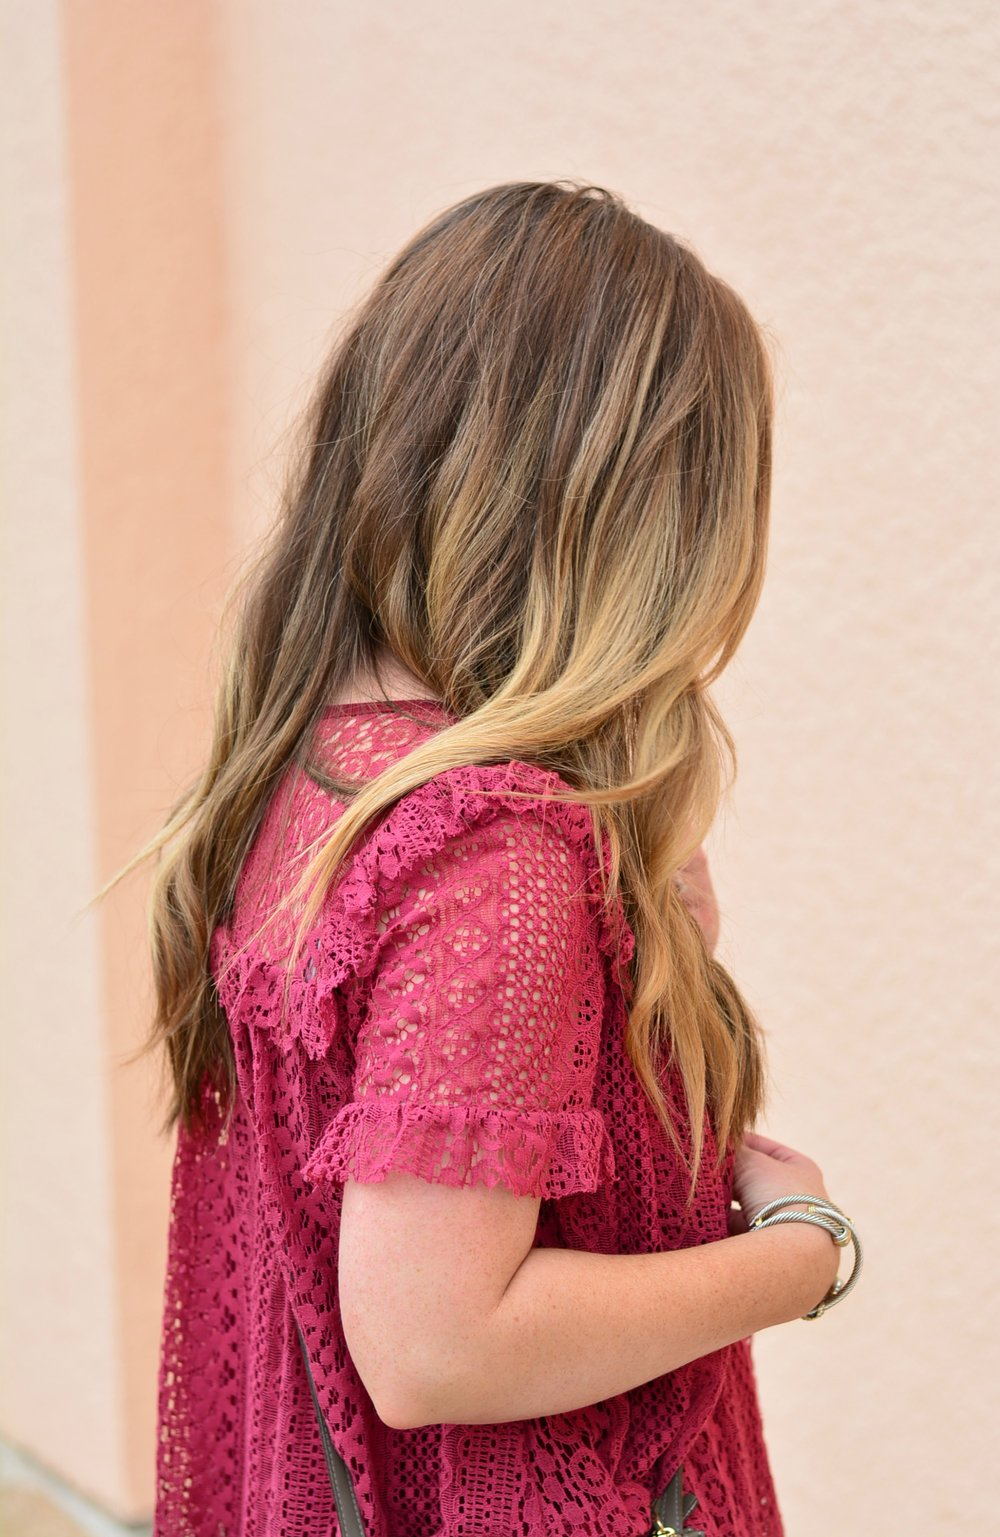 Cranberry lace top - casual outfit